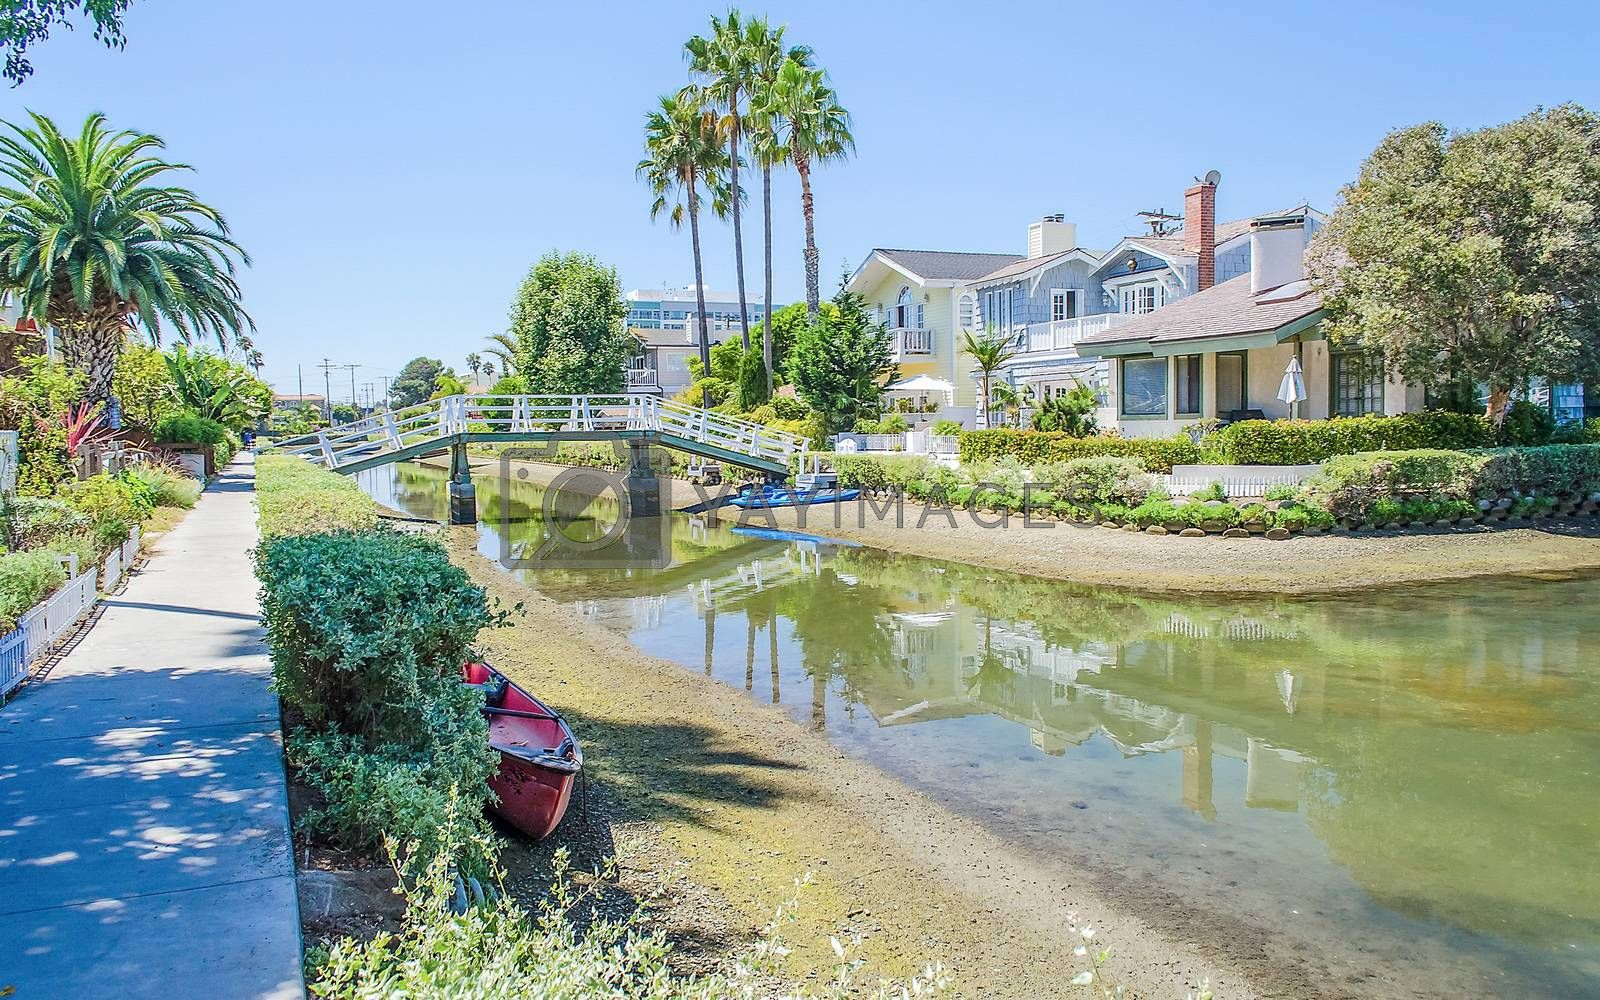 Residential area with canals in Venice Beach, Los Angeles, California